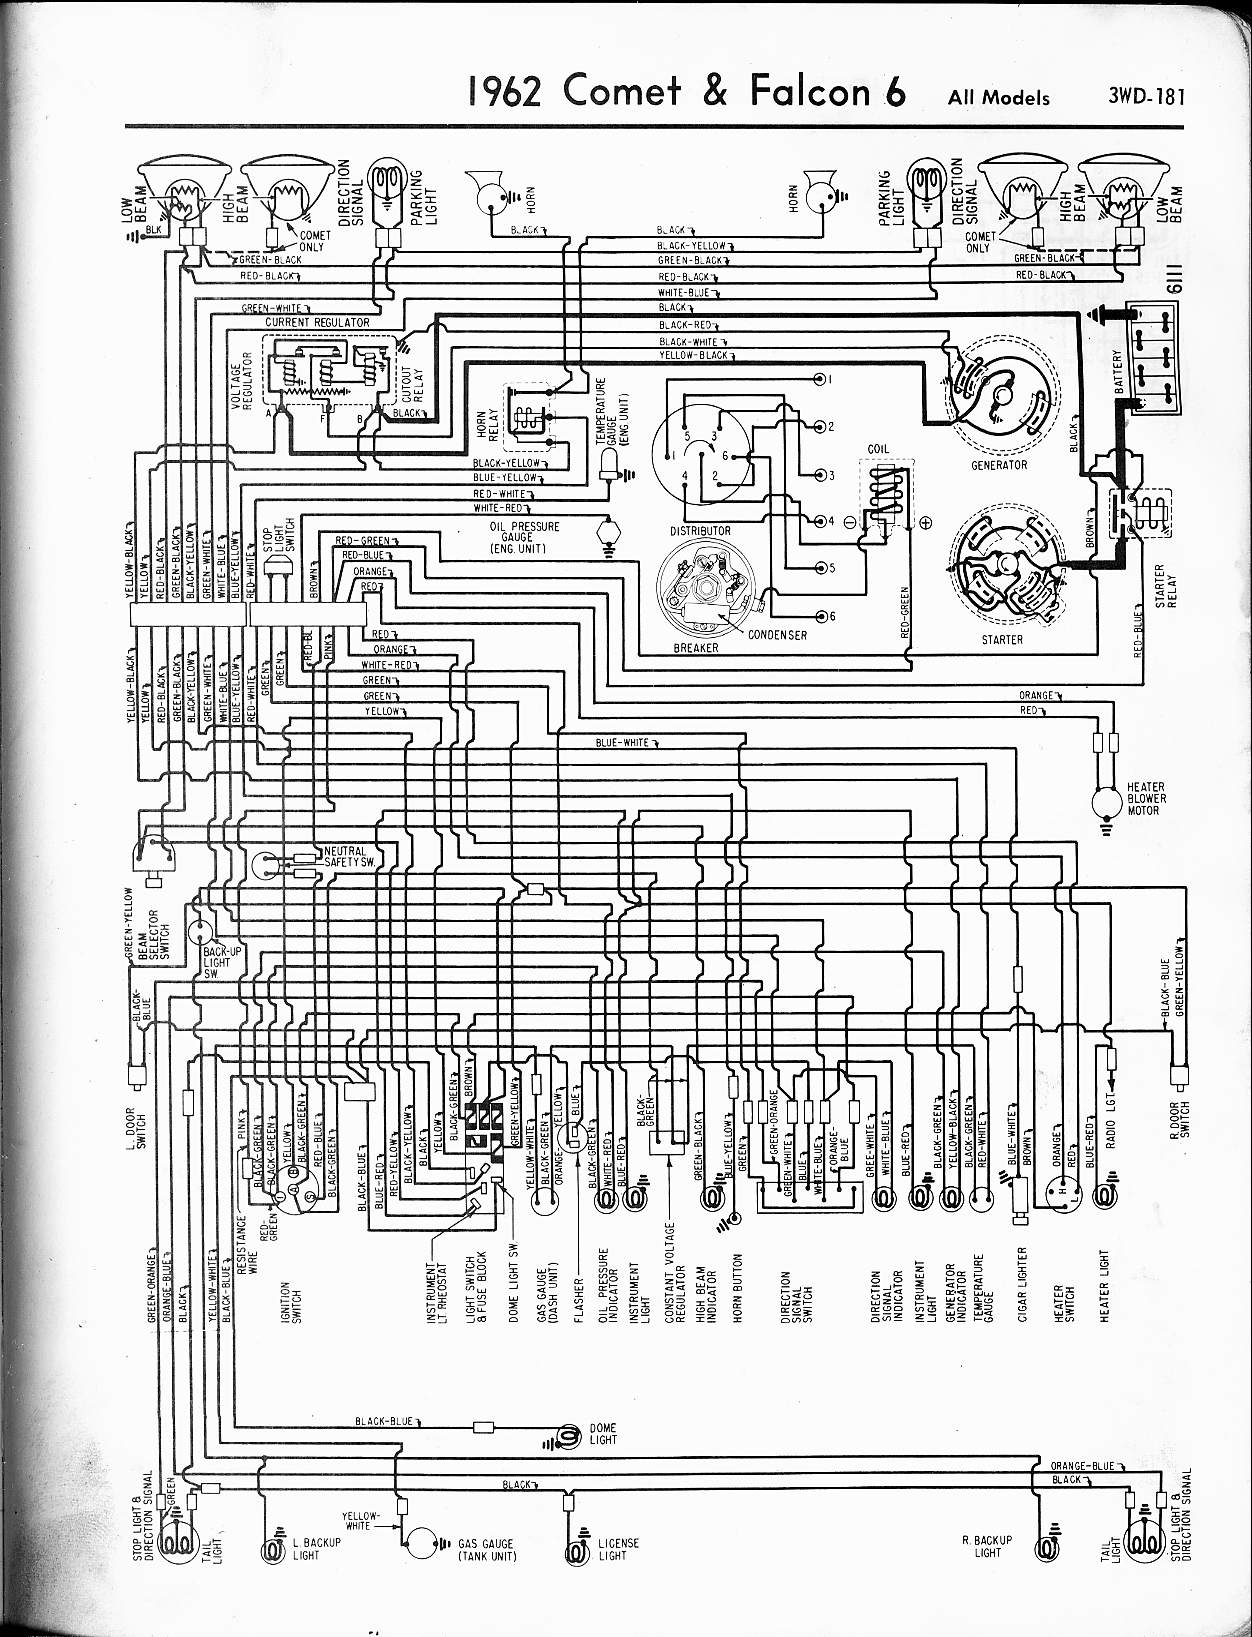 1965 mercury comet wiring diagram trusted wiring diagrams \u2022 1955 mercury montclair 1966 mercury comet wiring diagram schematic wiring diagrams u2022 rh detox design co 1972 mercury comet